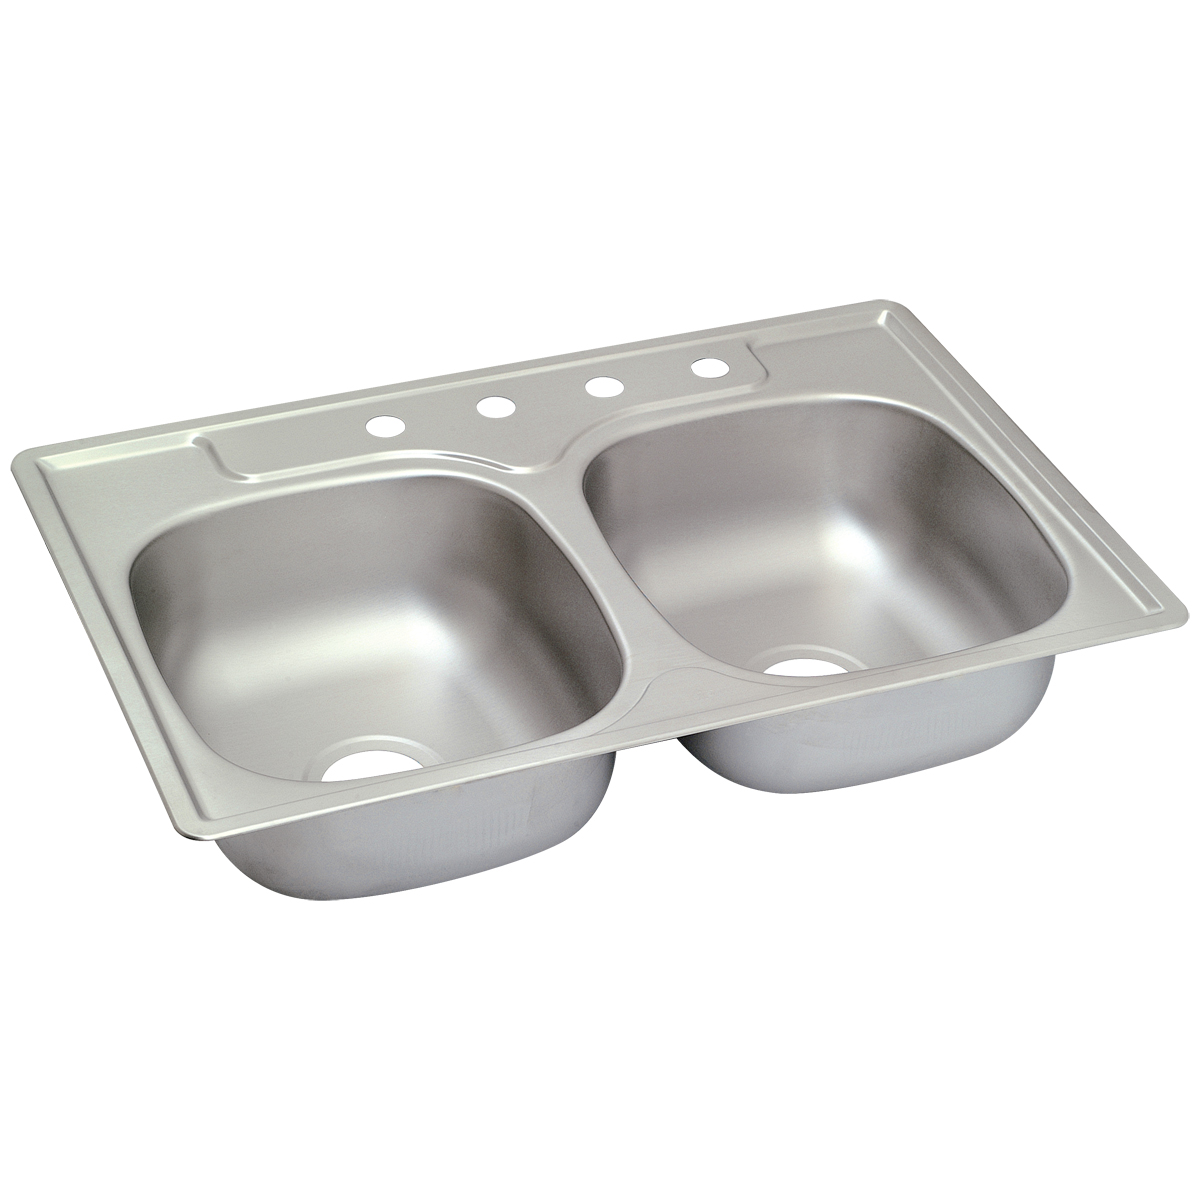 Double-Bowl Stainless Steel Kitchen Sink - 3-Hole - 86110 | Contractor  Access